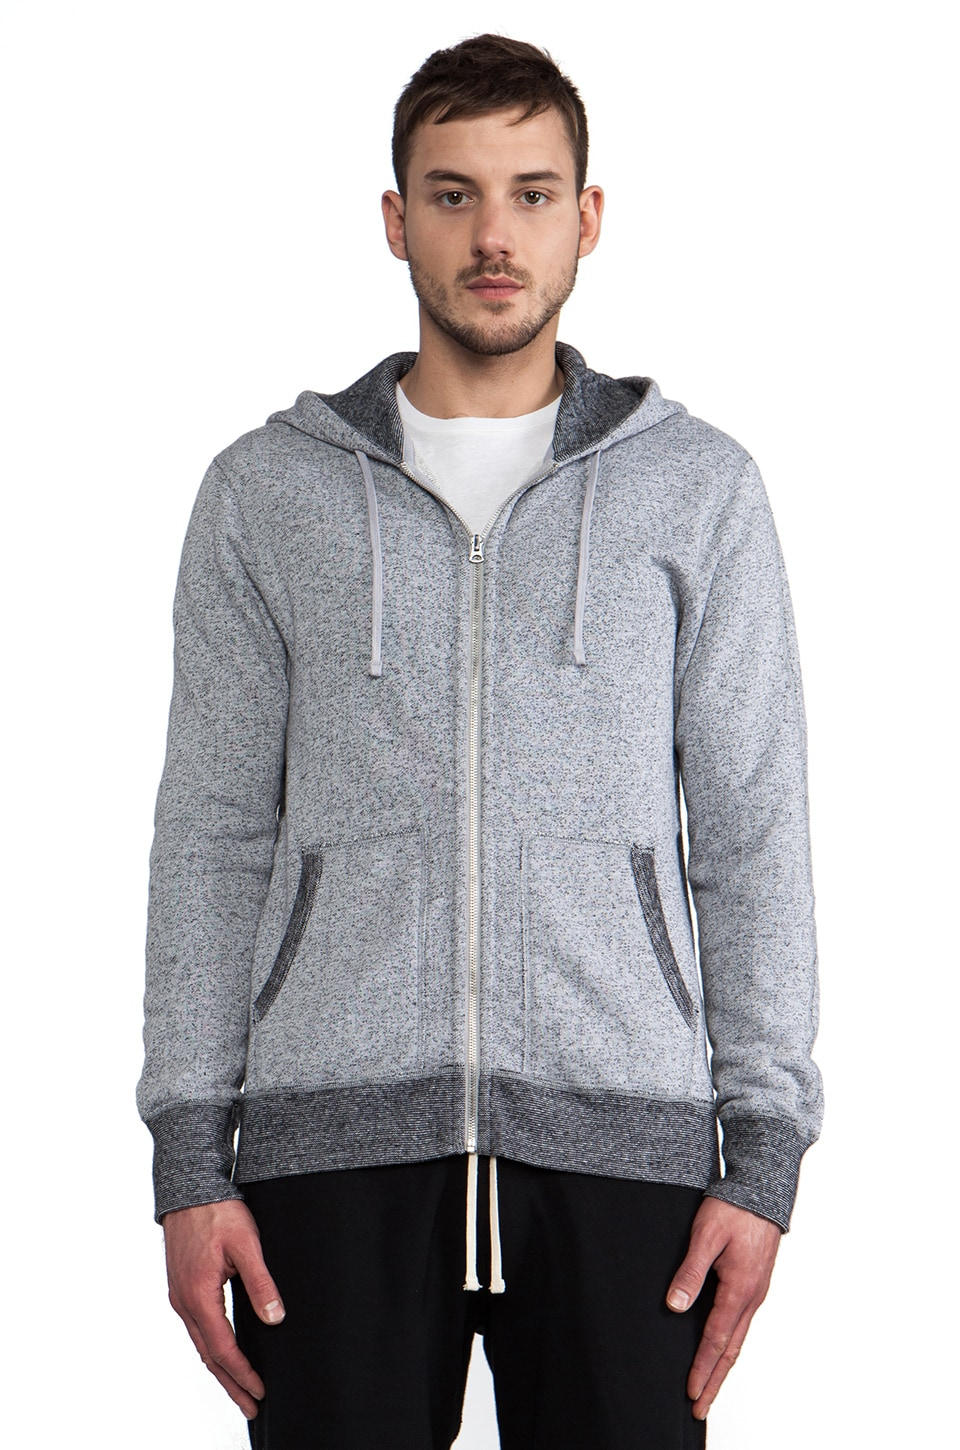 Reigning Champ Full-Zip Hoodie in Black & White